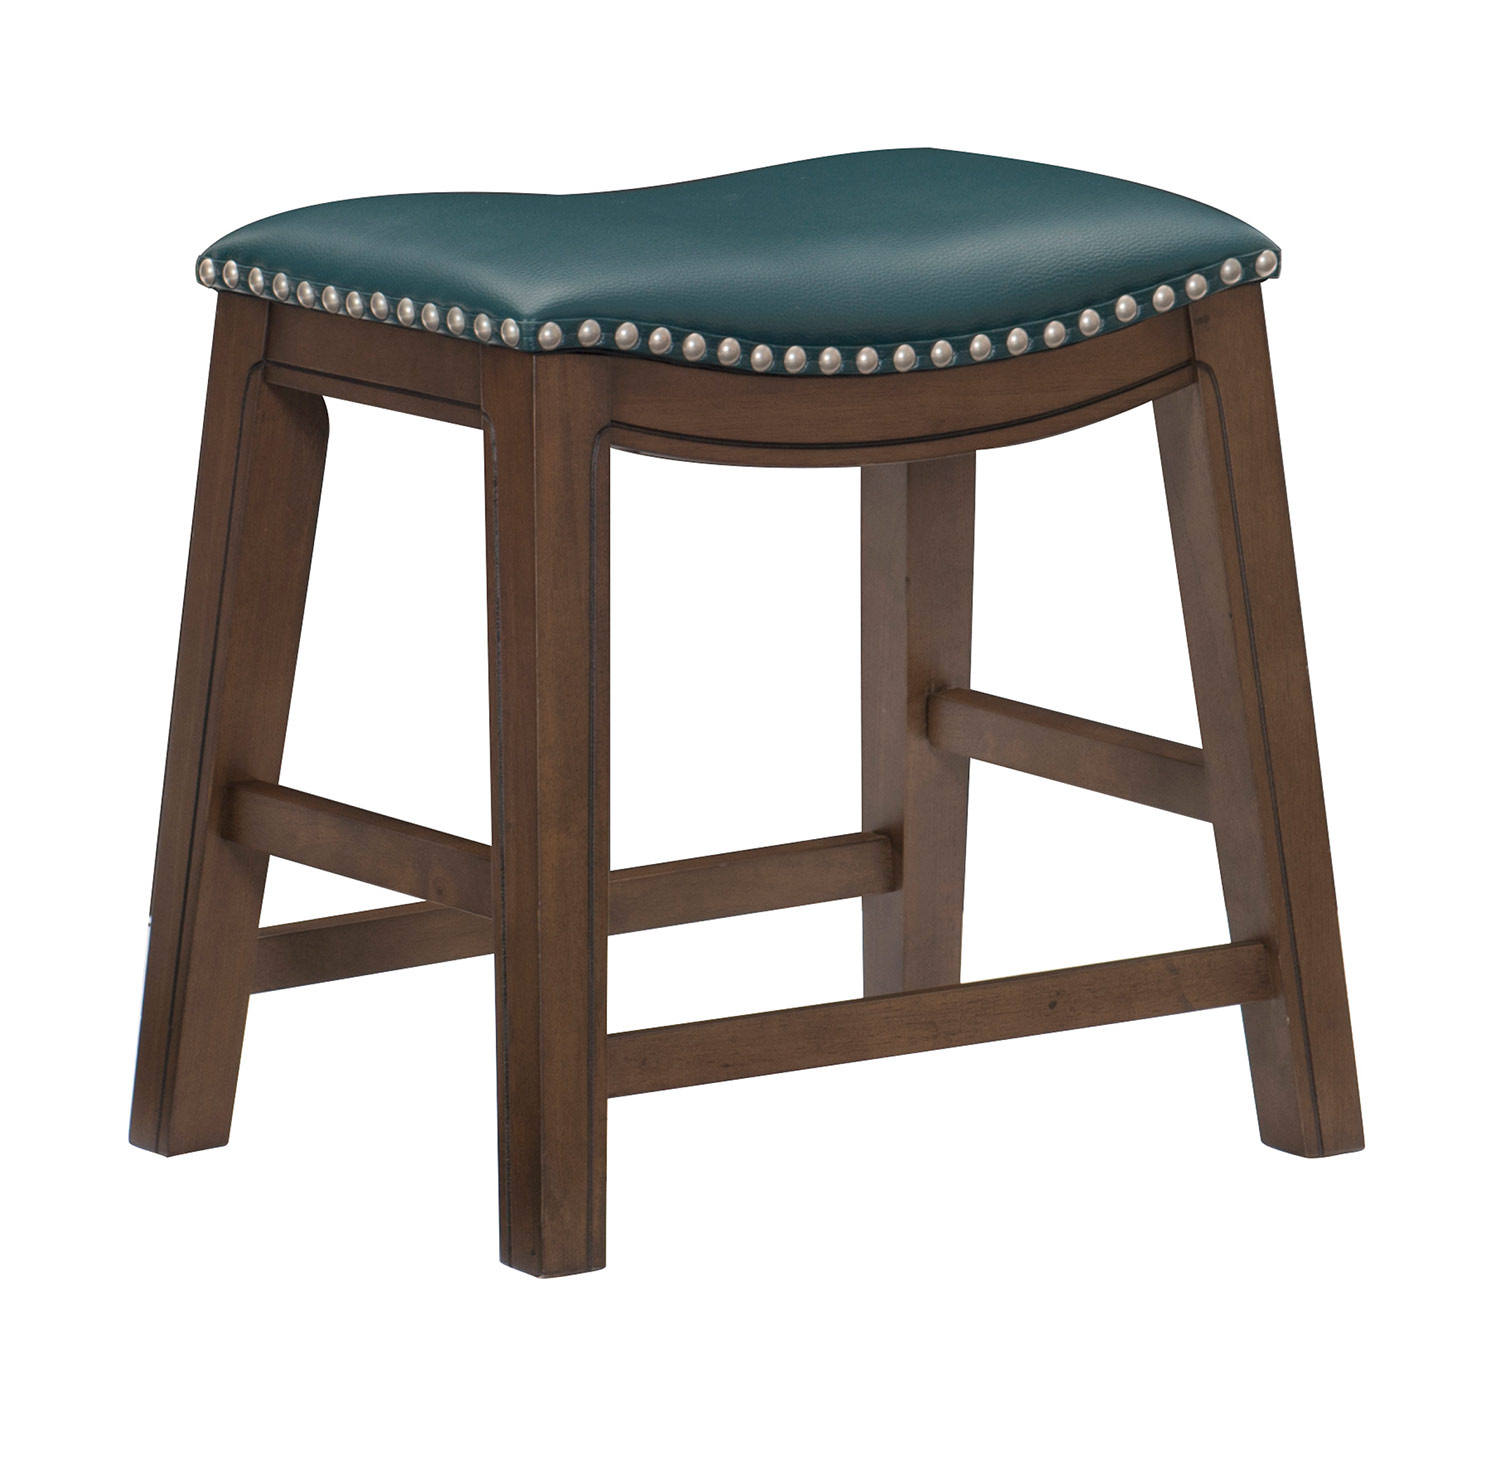 Homelegance 18 SH Stool - Green